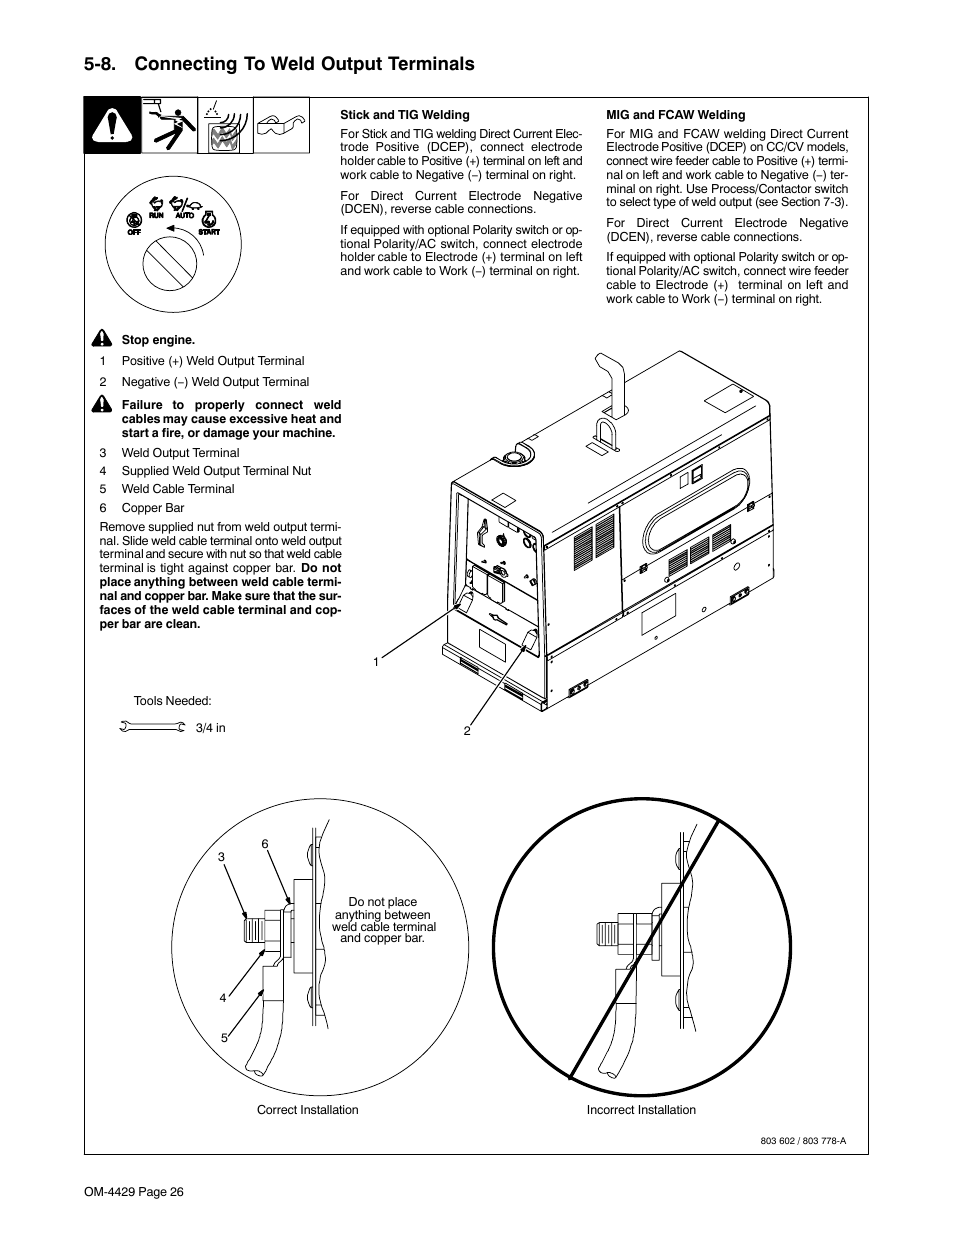 medium resolution of 8 connecting to weld output terminals miller electric big blue 500 pt user manual page 30 90